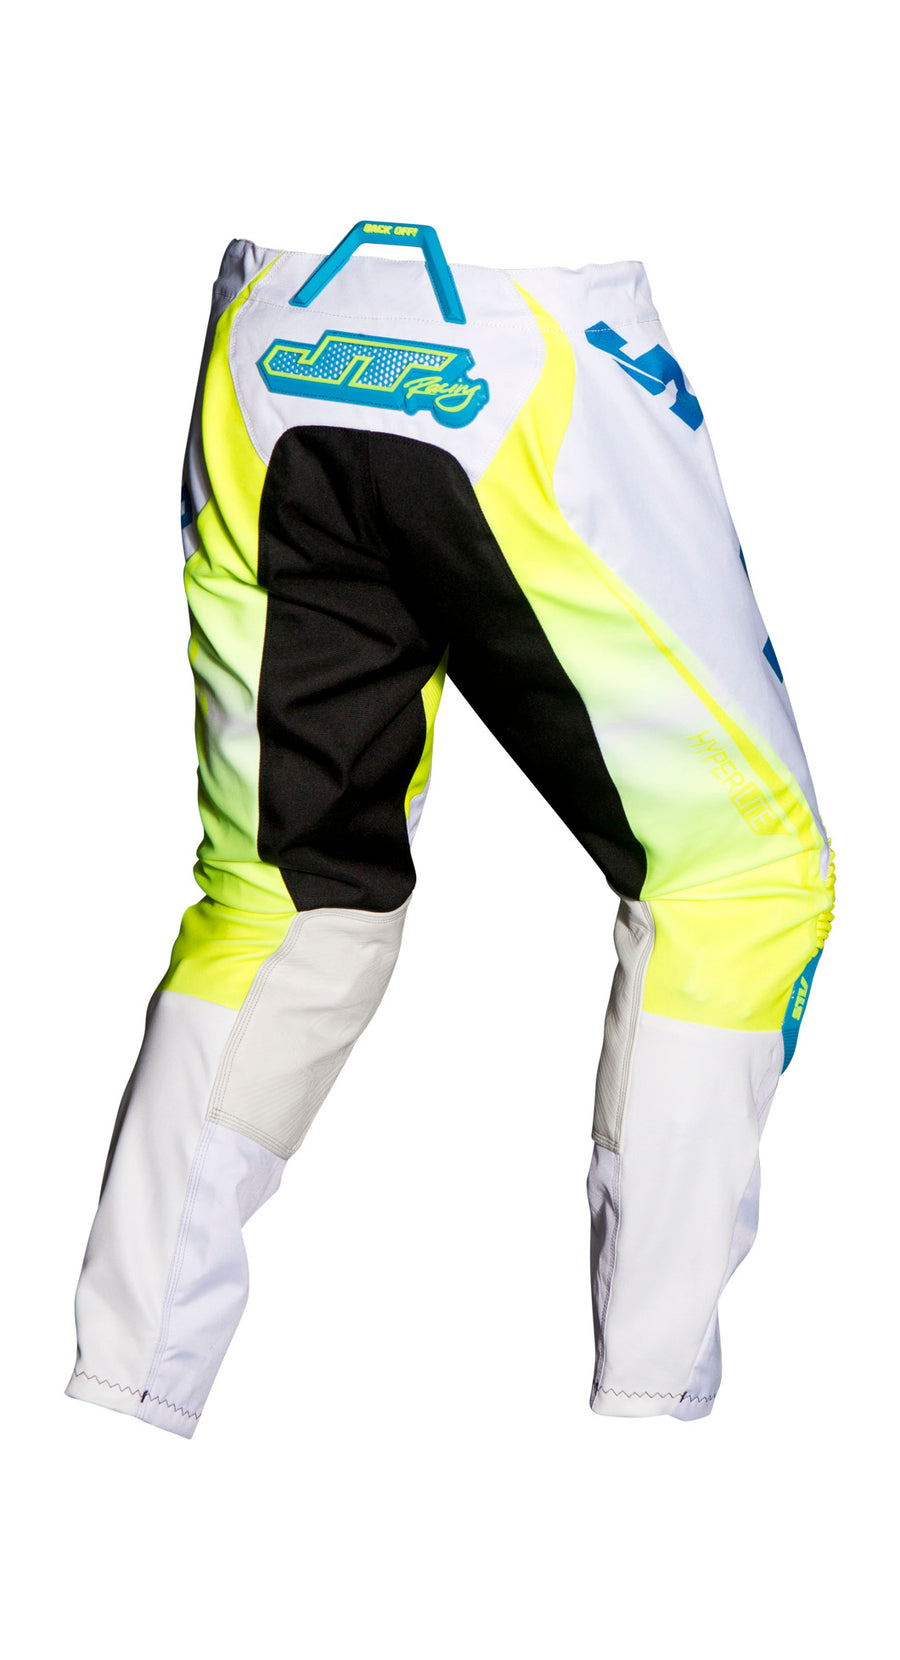 HYPERLITE CHECKER PANT - CYNWHTYLW